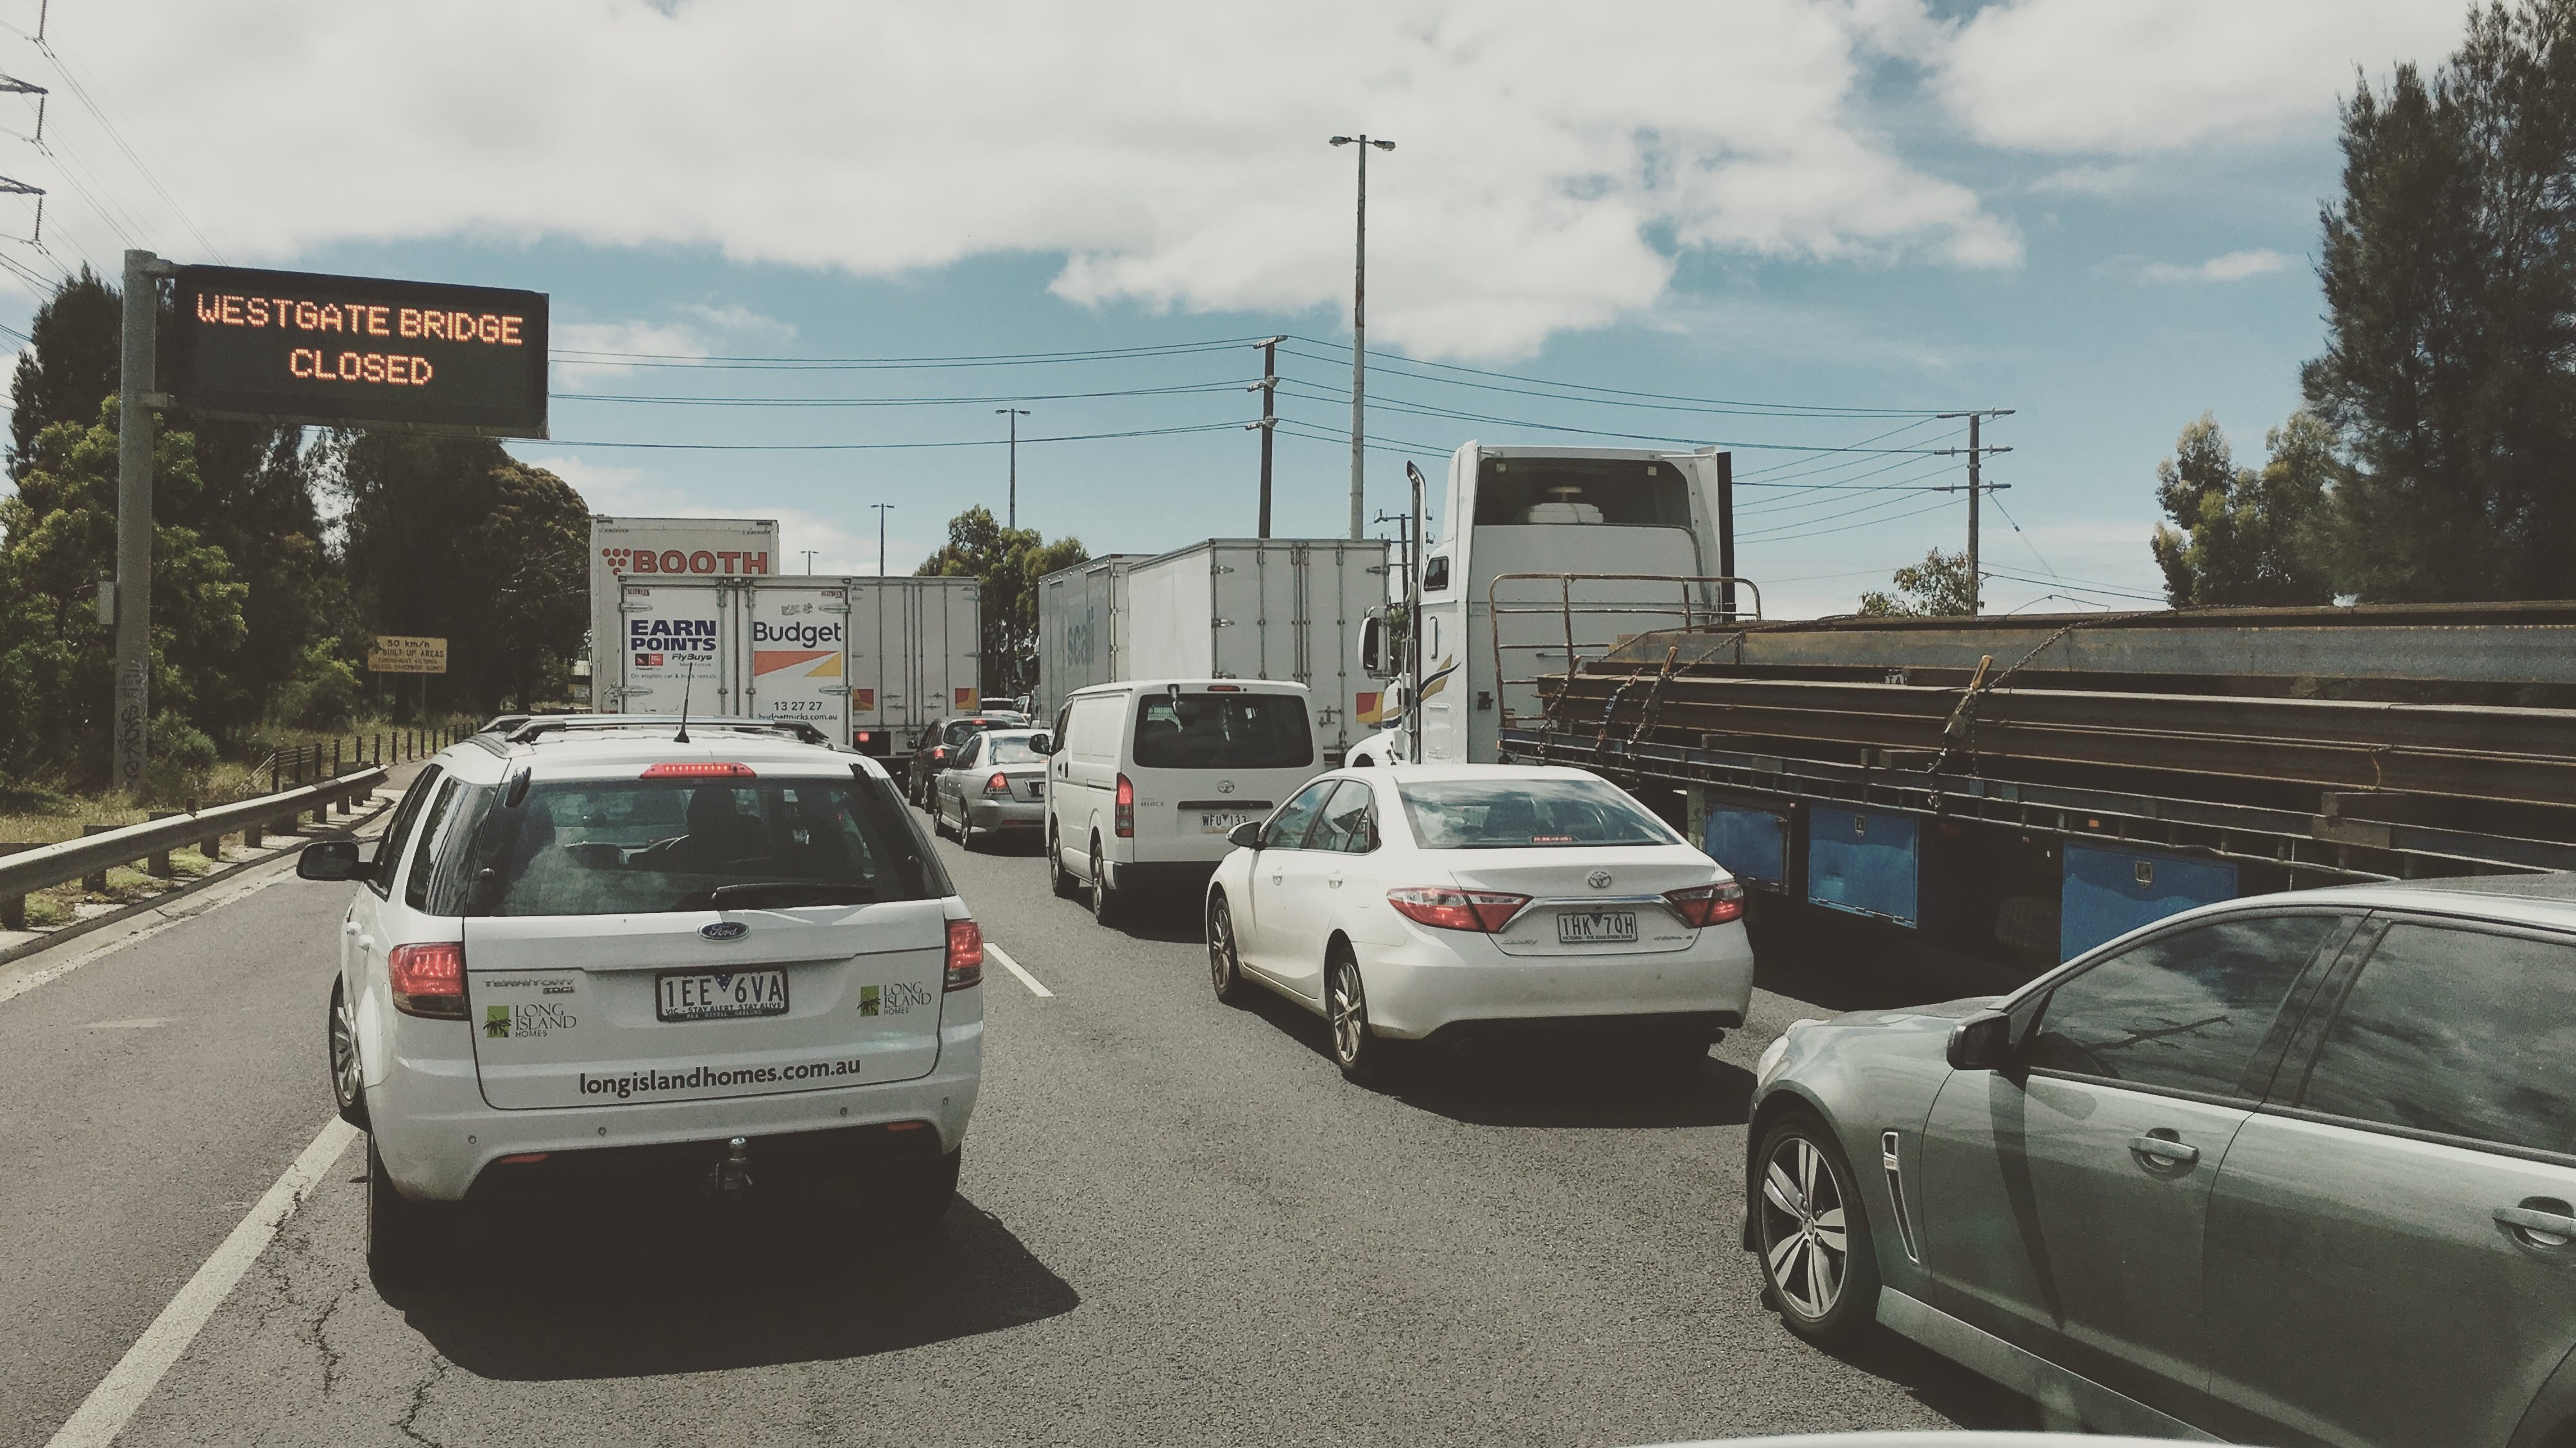 Westgate Freeway traffic jam caused by the Westgate Bridge closure following a fatality